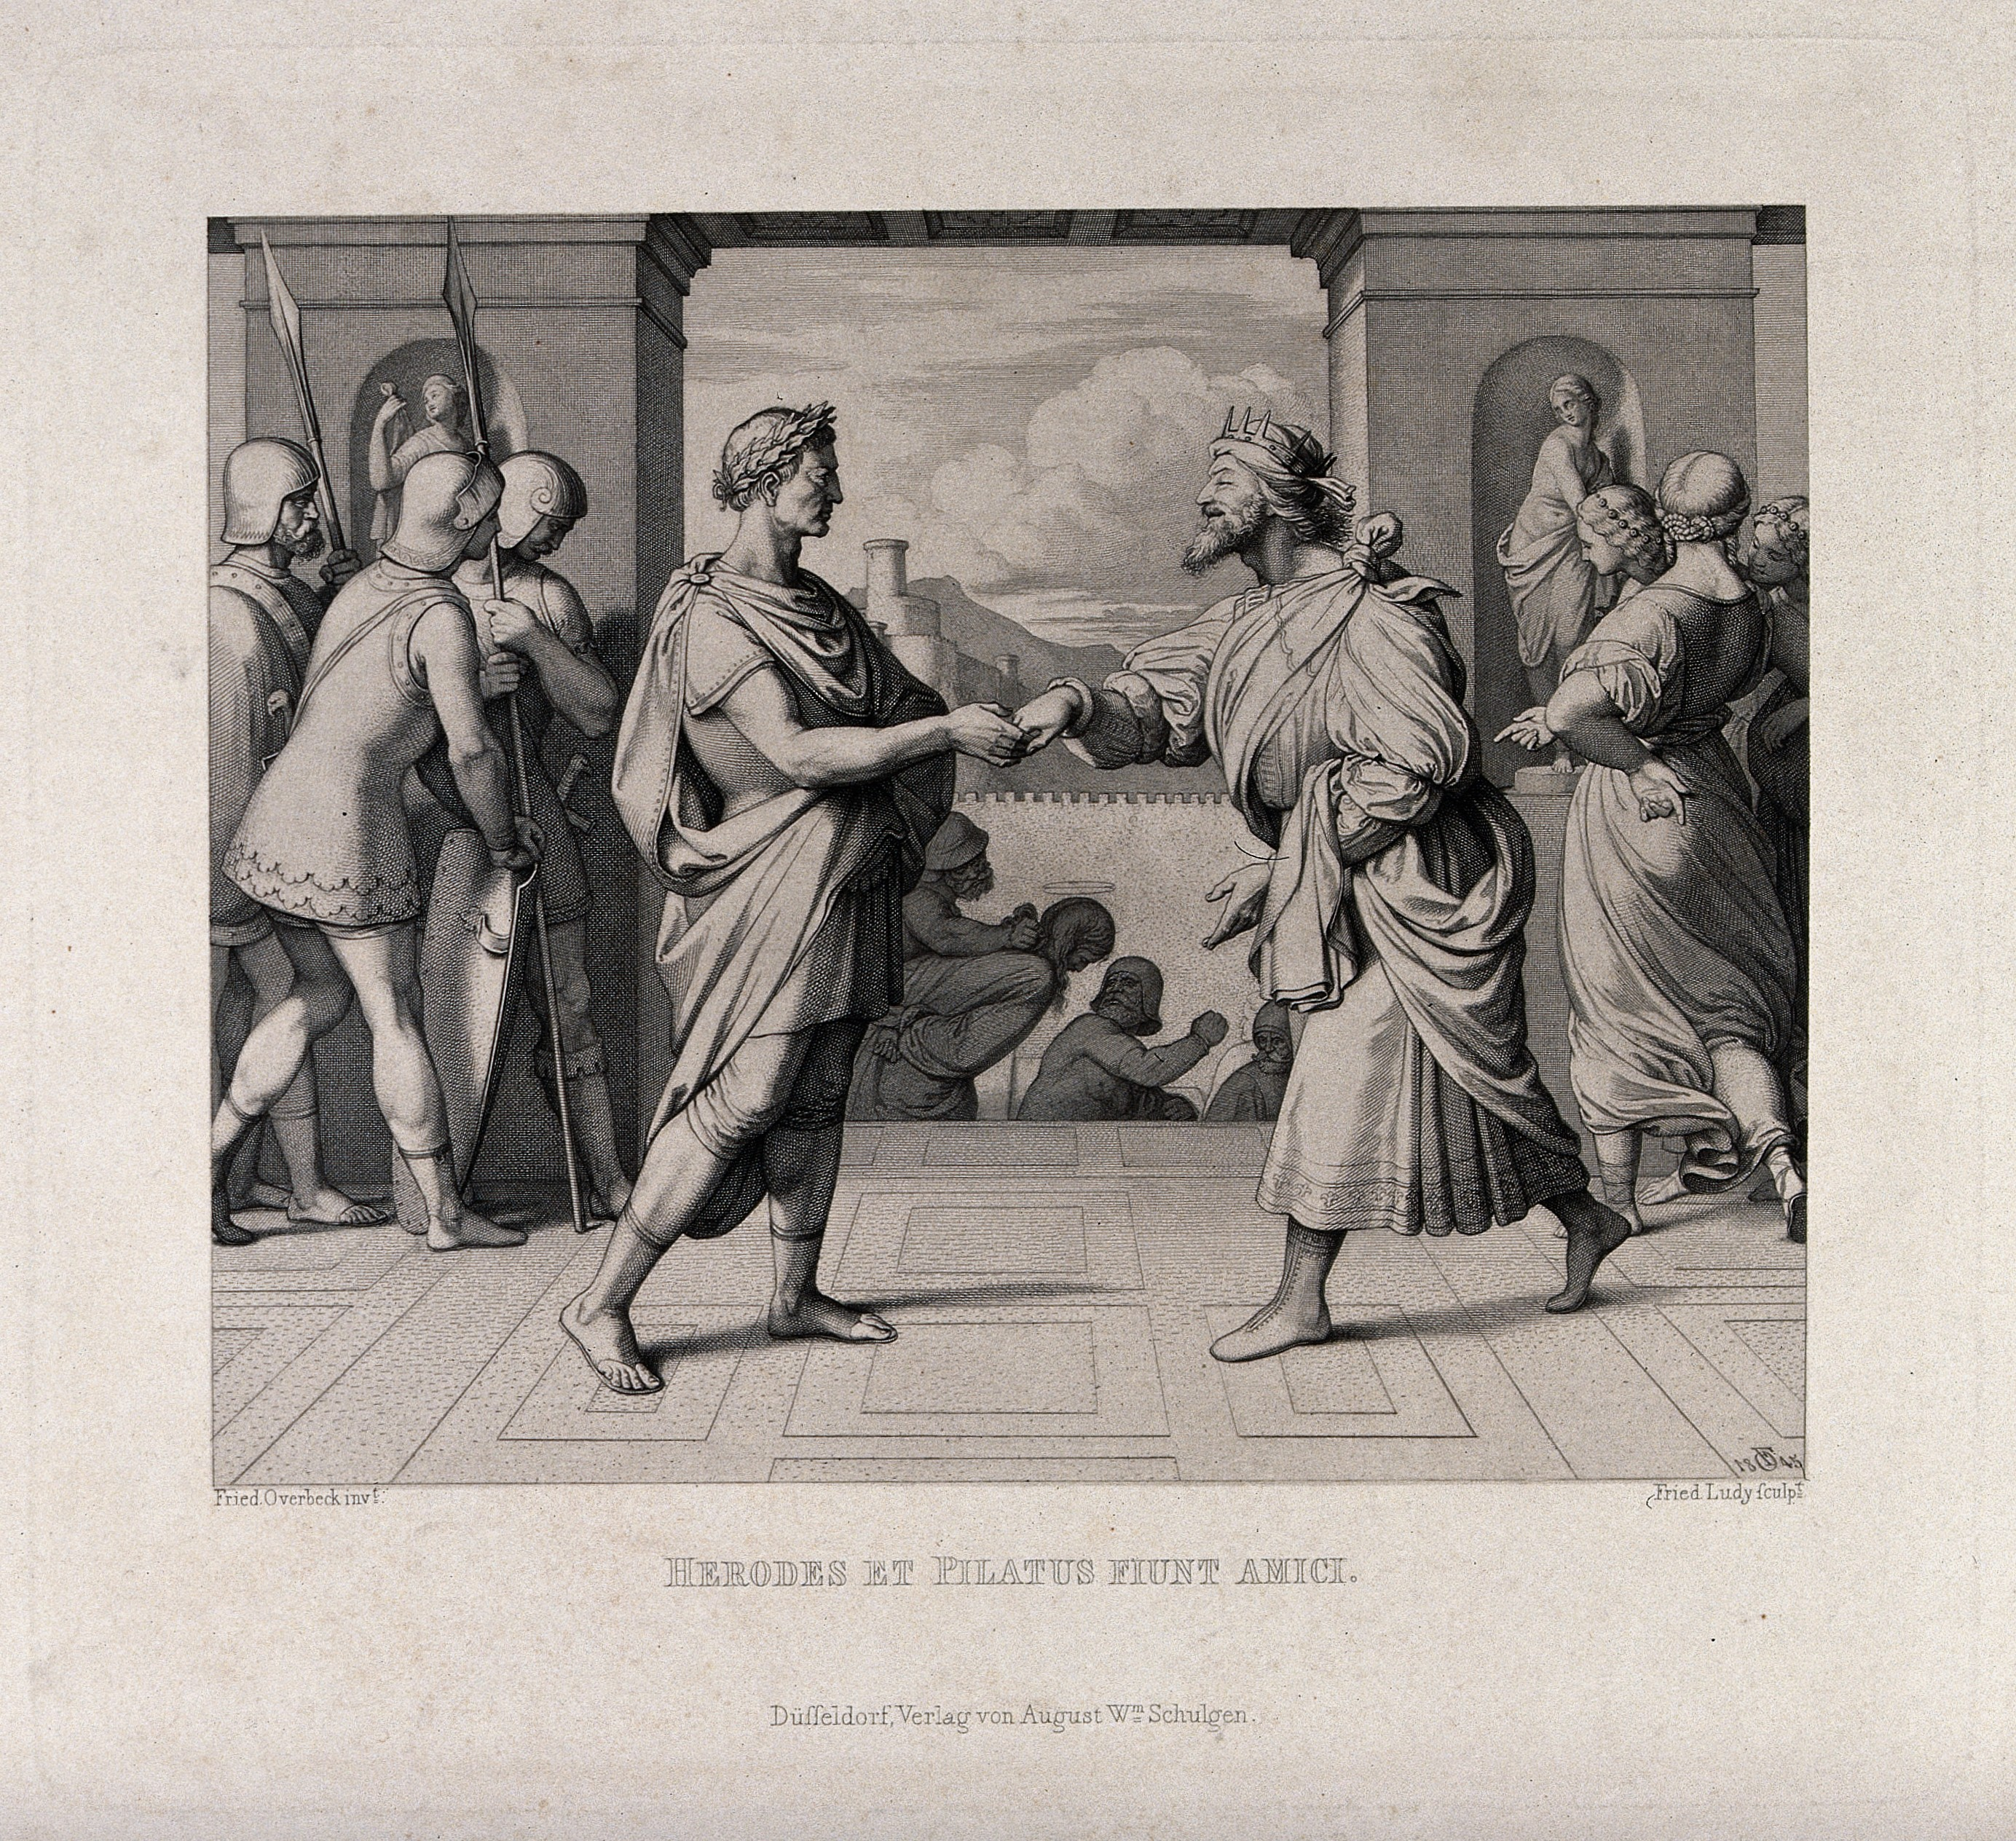 file herod and pontius pilate shake hands etching by f a ludy a